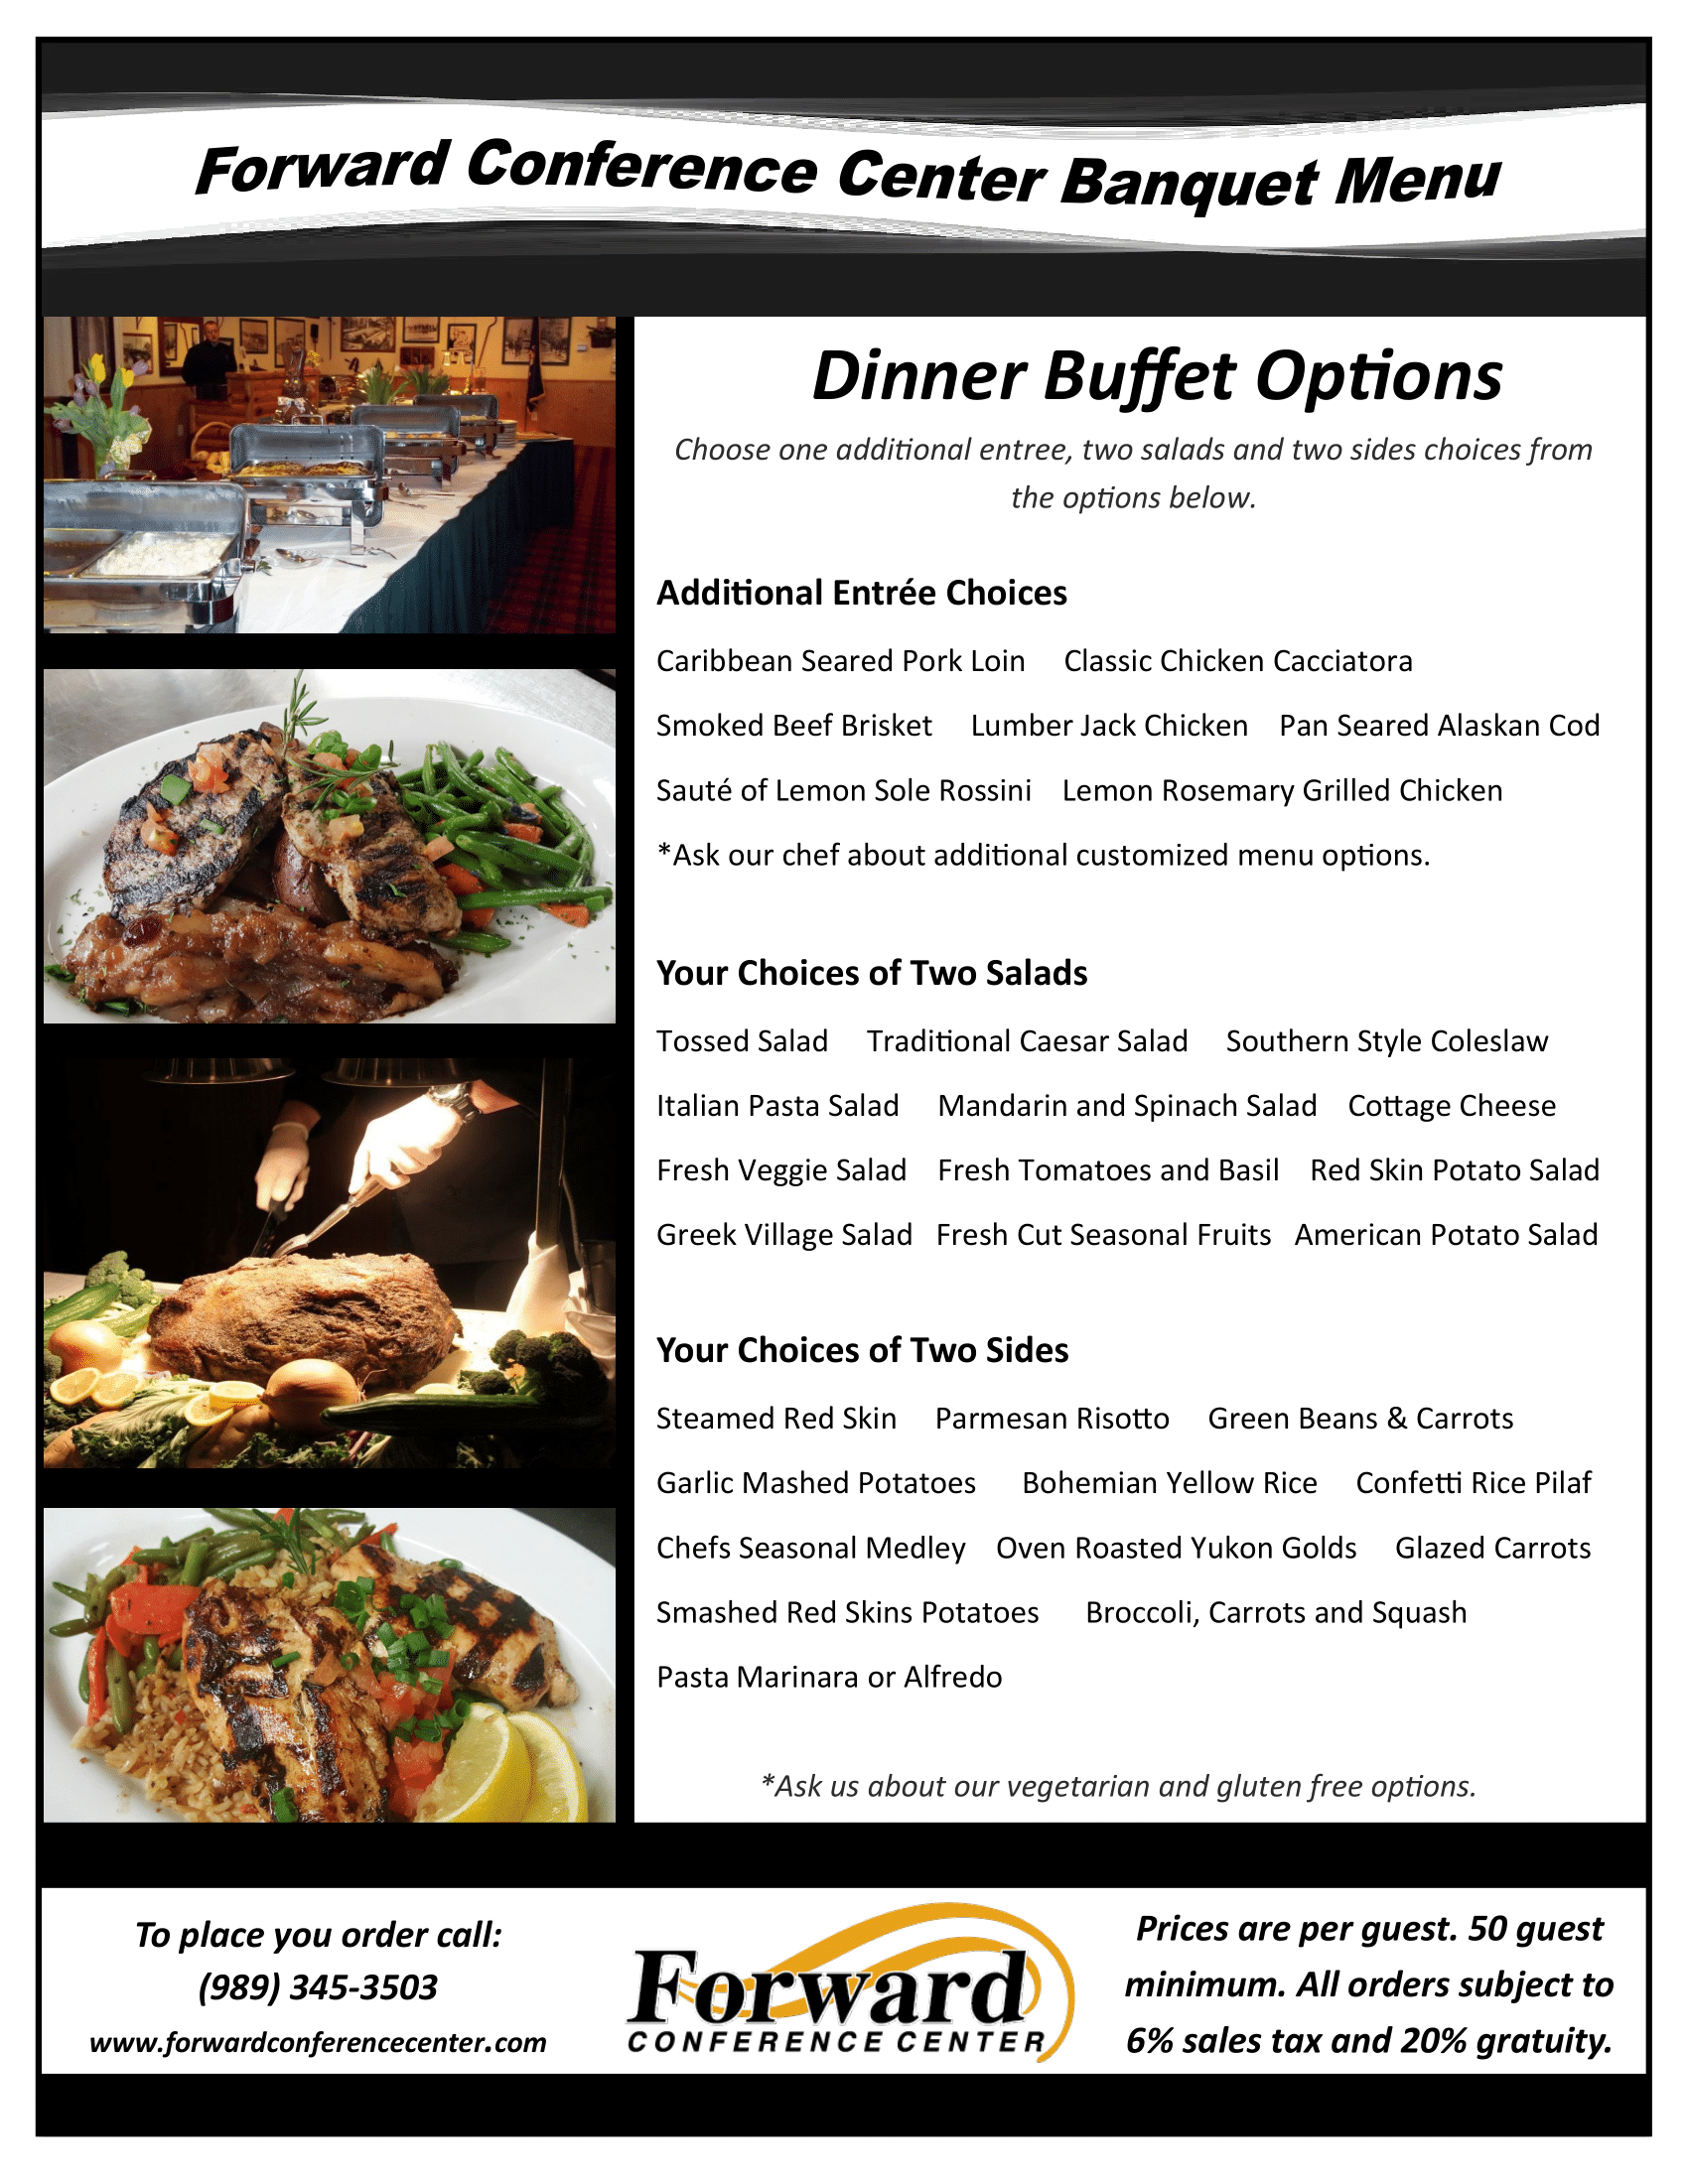 Full Banquet Menu - #9